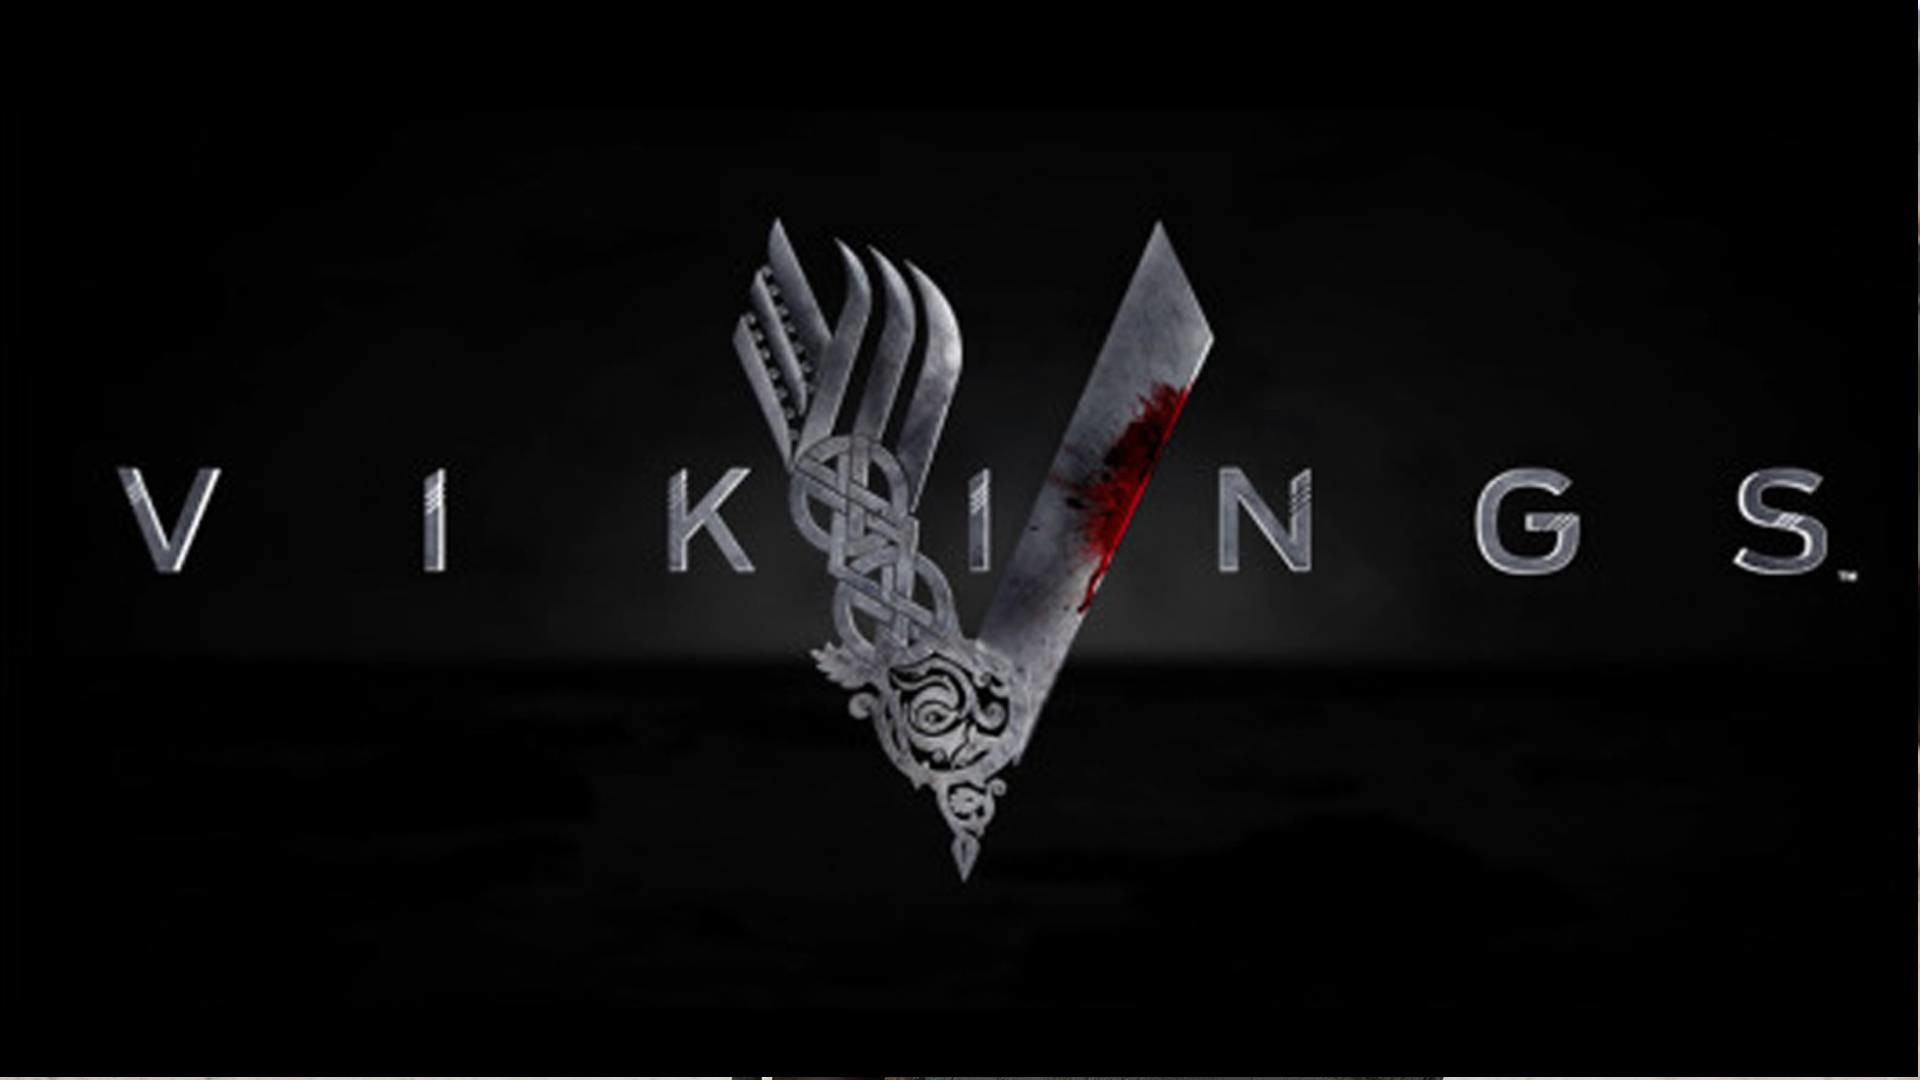 1920x1080 undefined Viking Wallpaper (39 Wallpapers) | Adorable Wallpapers |  Wallpapers | Pinterest | Vikings, Wallpaper and Hd wallpaper